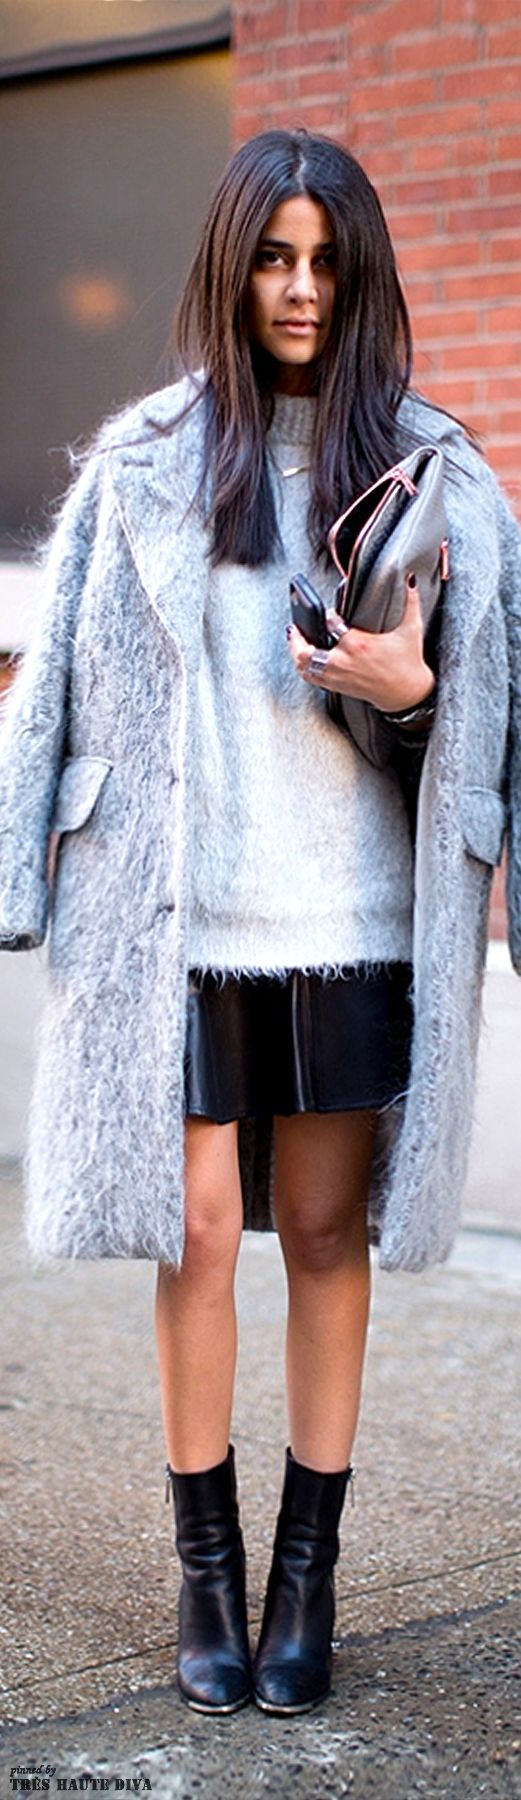 Day 1 #NYFW Fall 2014 #Streetstyle